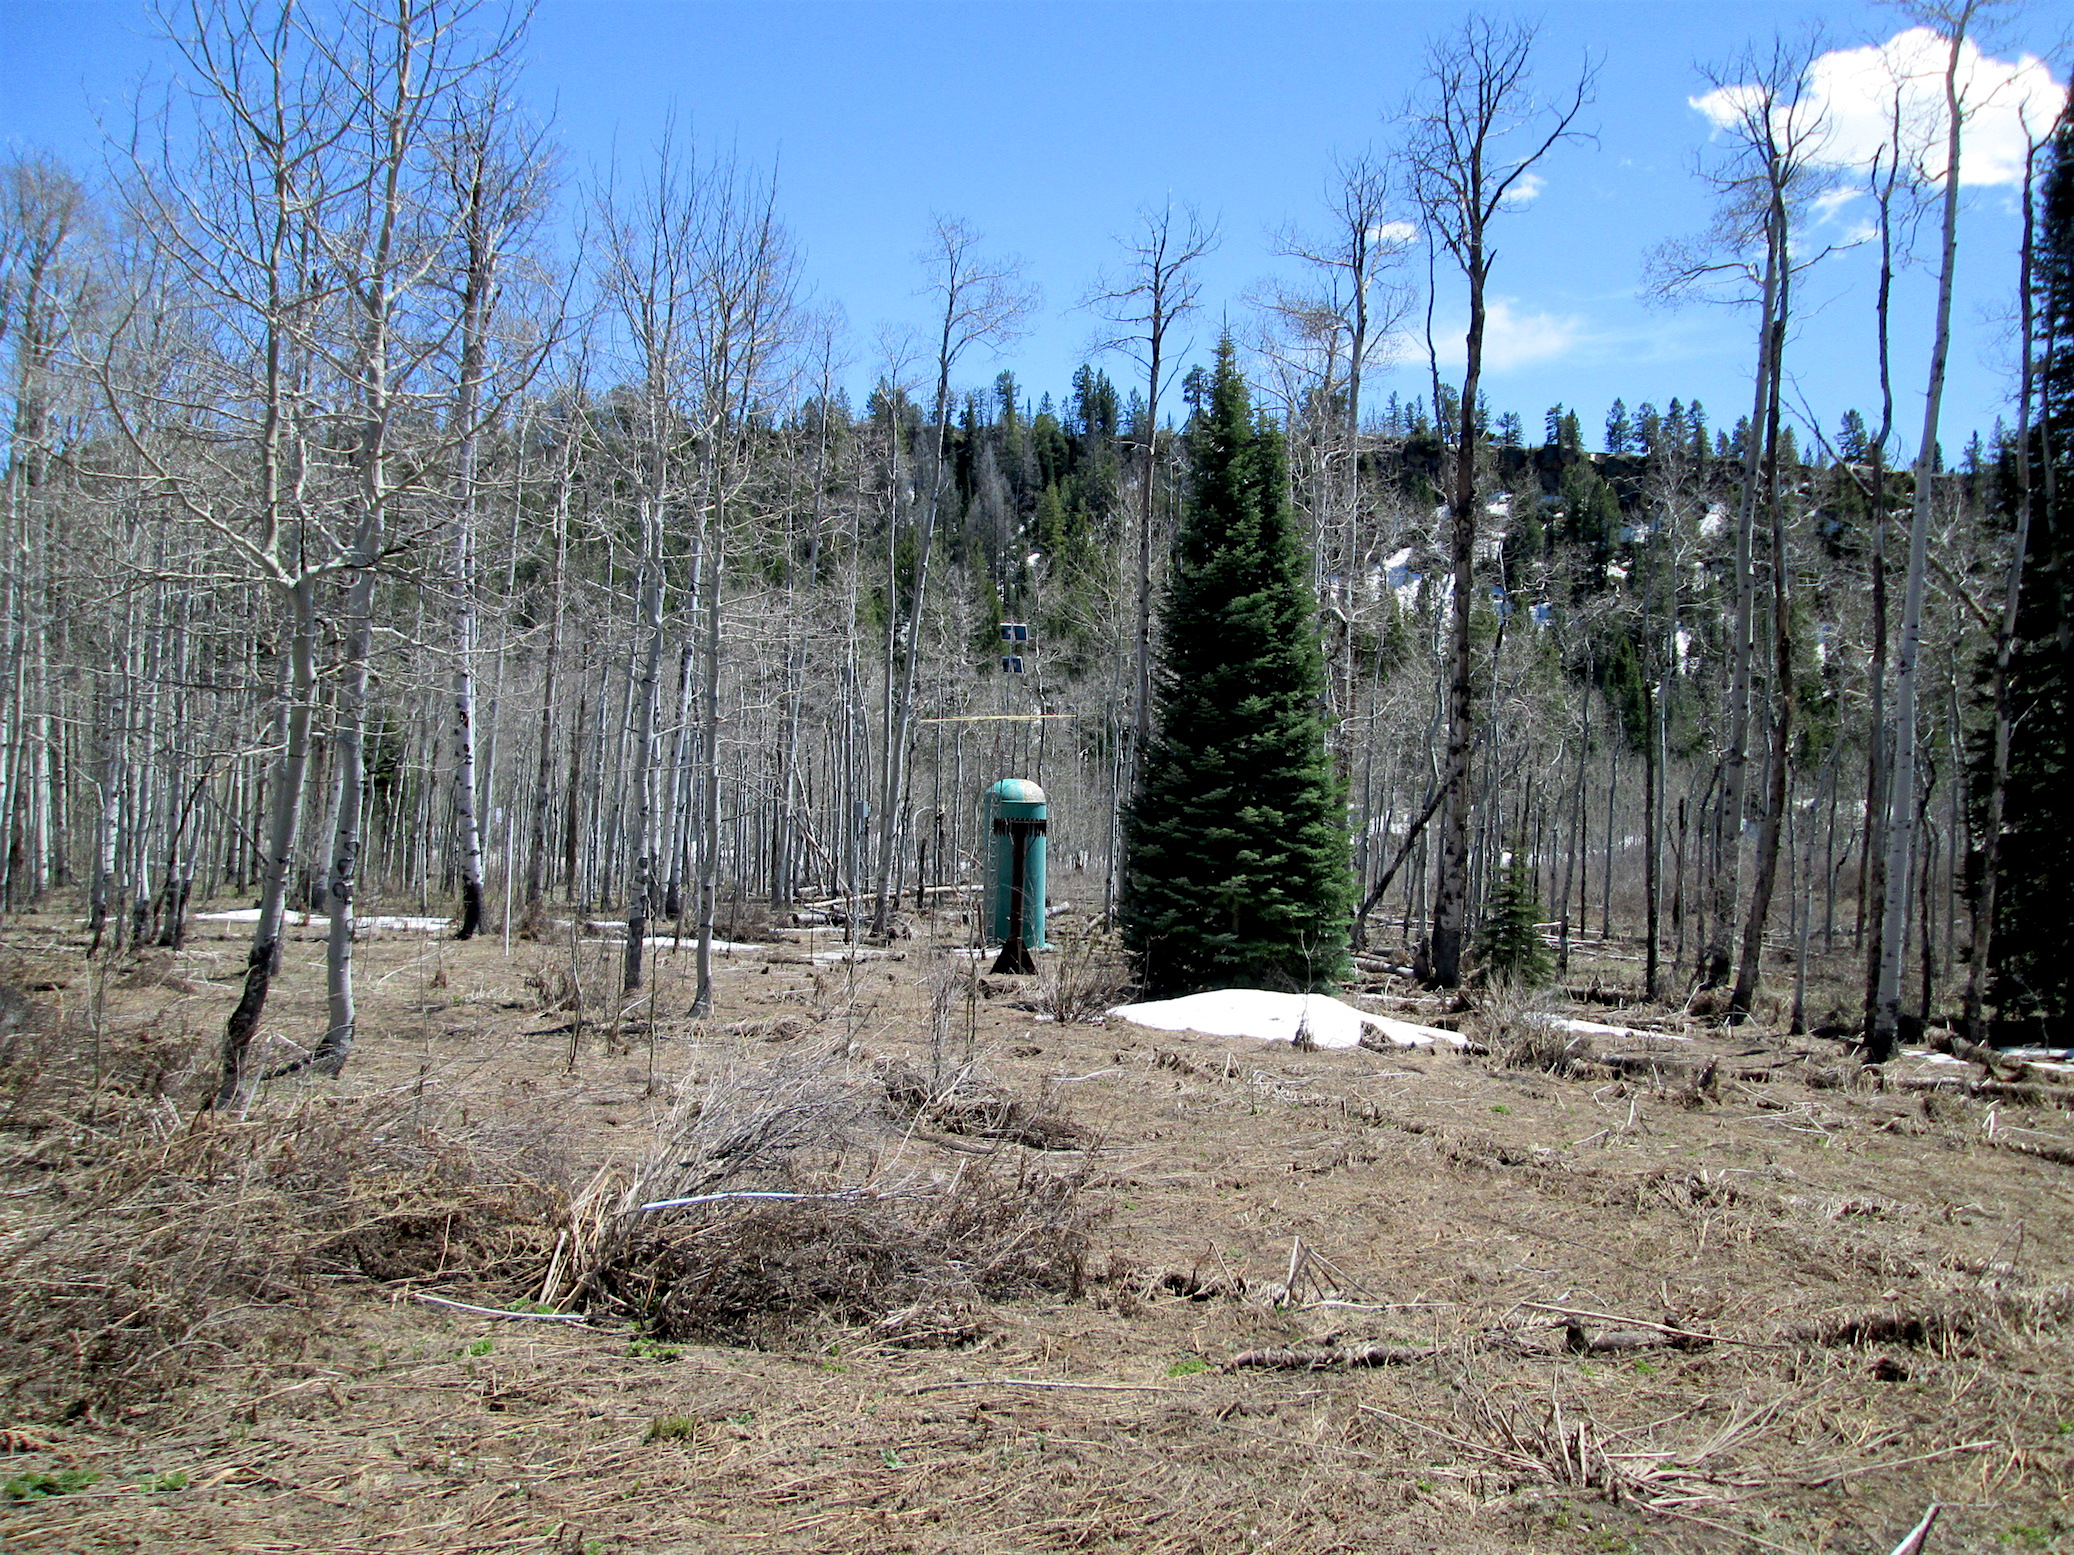 McClure Pass on May 13, 2016. Looking in the direction of McClure SNOTEL from the typical CODOS sample point. The snow pillow is completely free of snow.